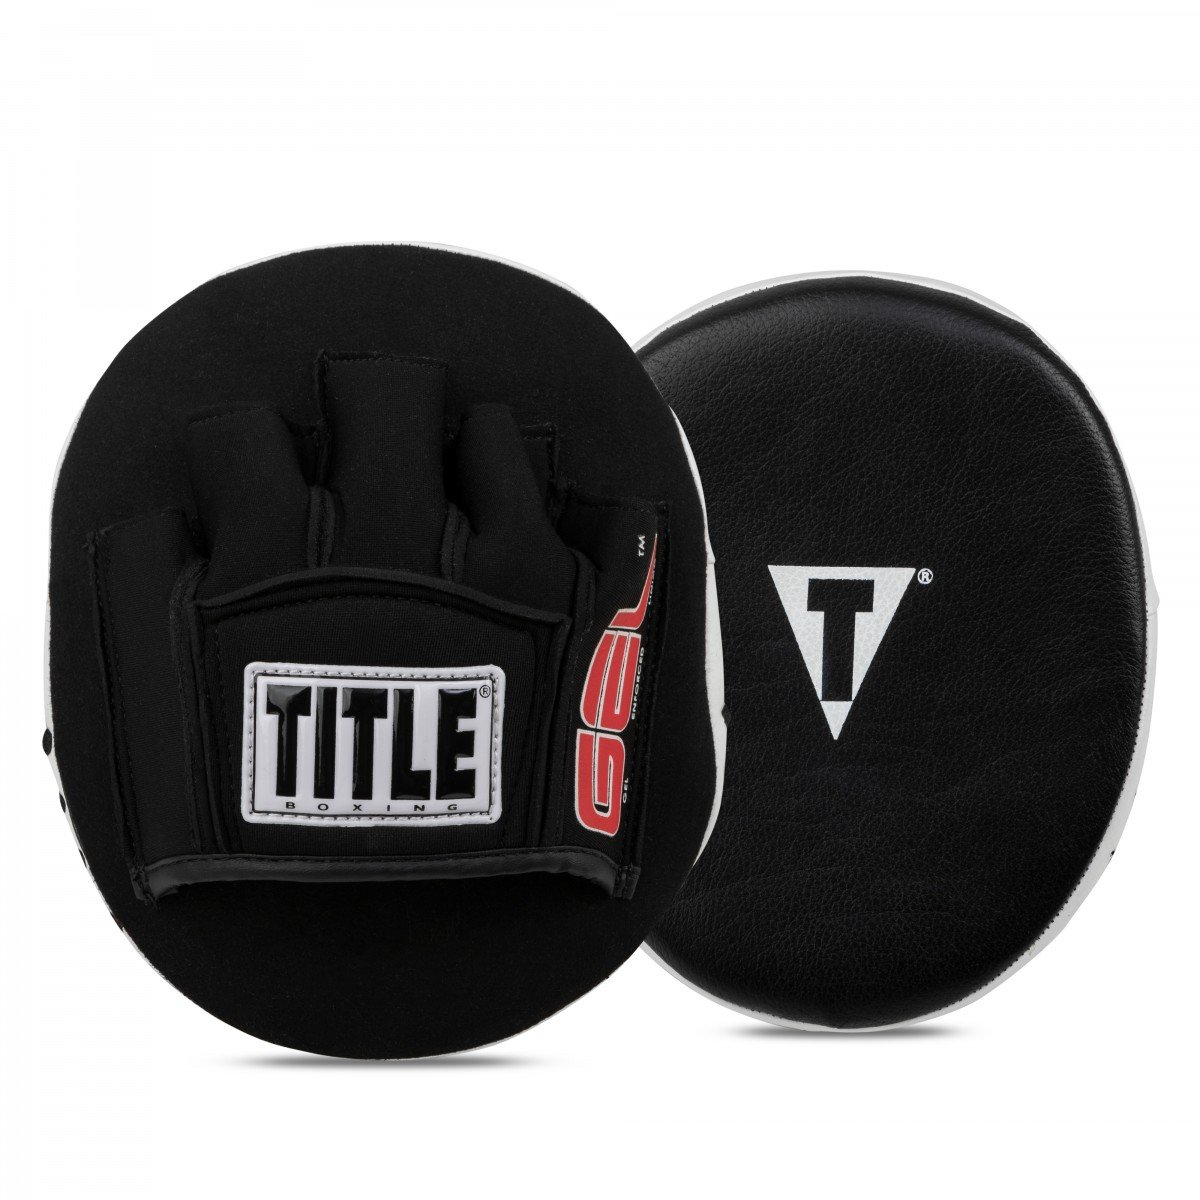 Title Boxing Gel Tech Punch Mitts 2.0, Black